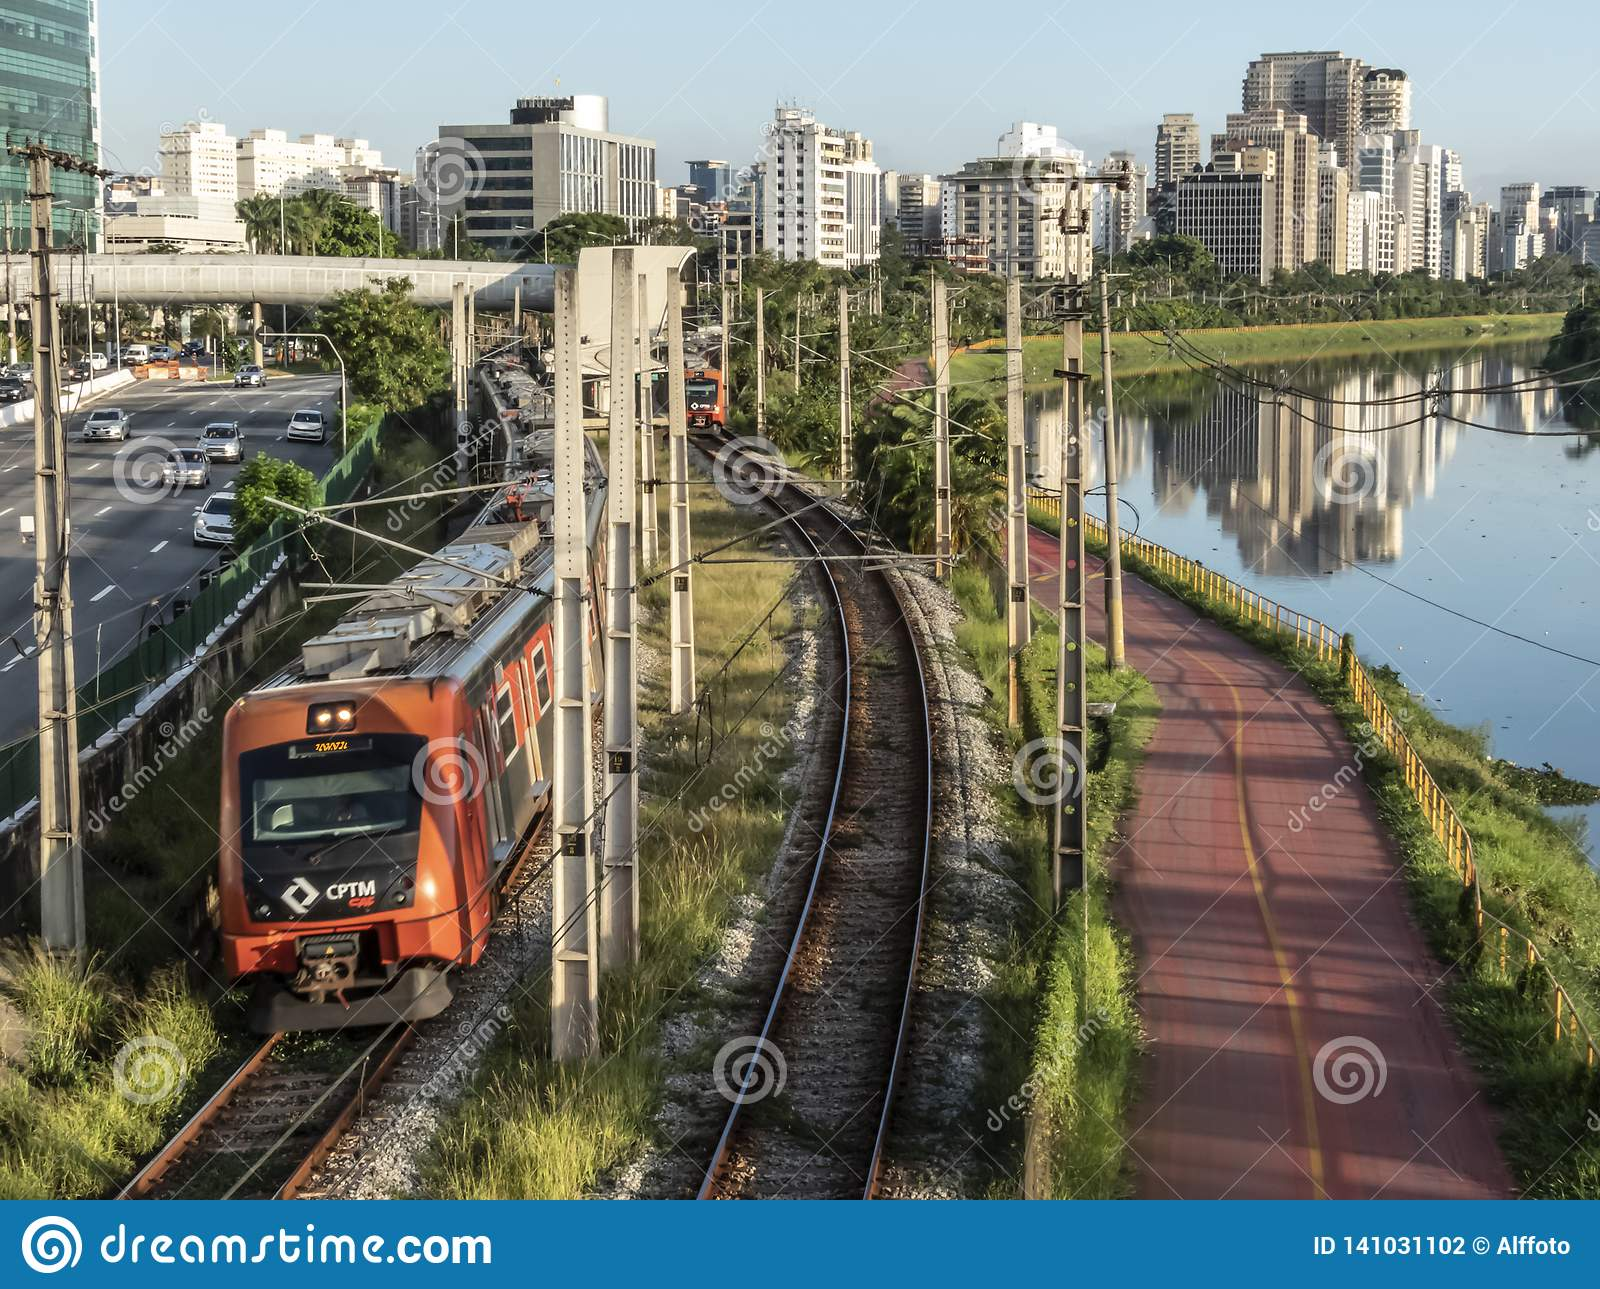 View of buildings, CPTM train, traffic of vehicles and river in Marginal Pinheiros River Avenue